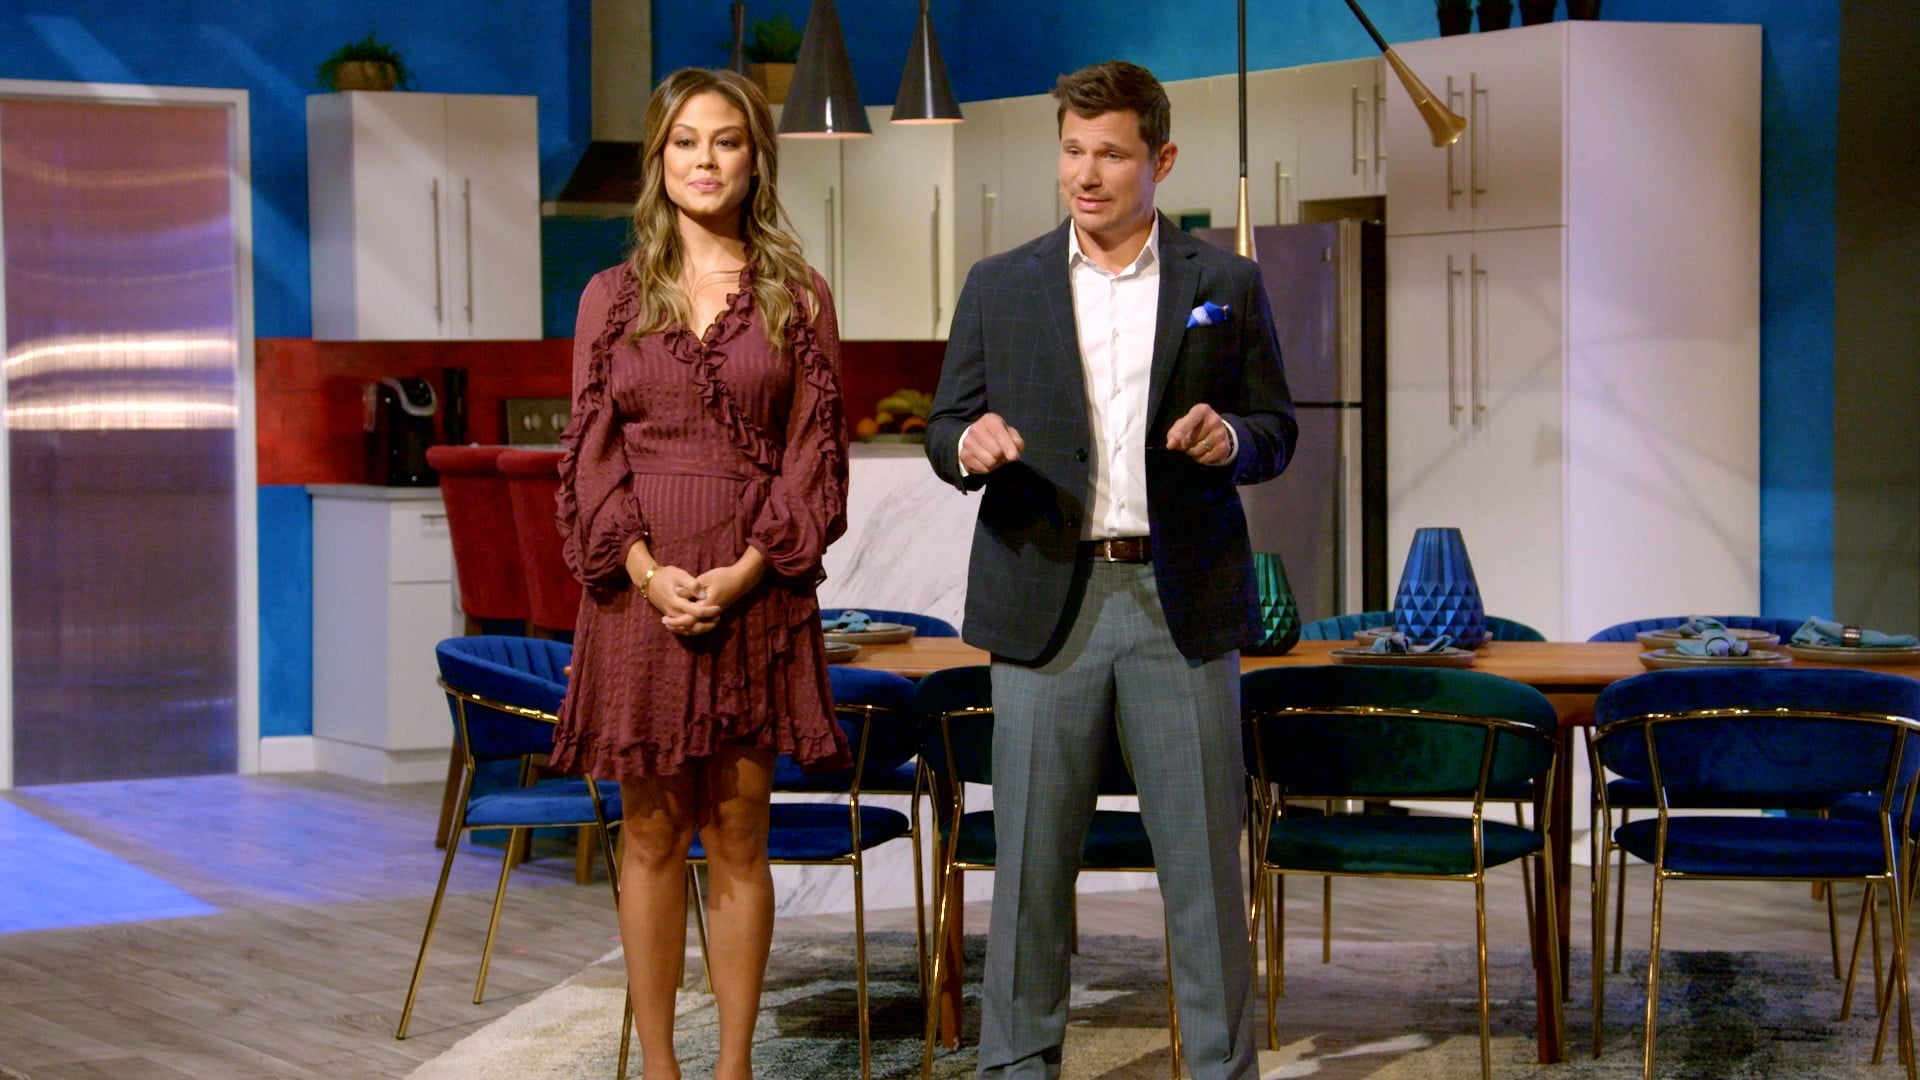 LOVE IS BLIND, from left: co-hosts Vanessa Lachey, Nick Lachey, (Season 1, ep. 101, aired Feb. 13, 2020). photo: Netflix / courtesy Everett Collection